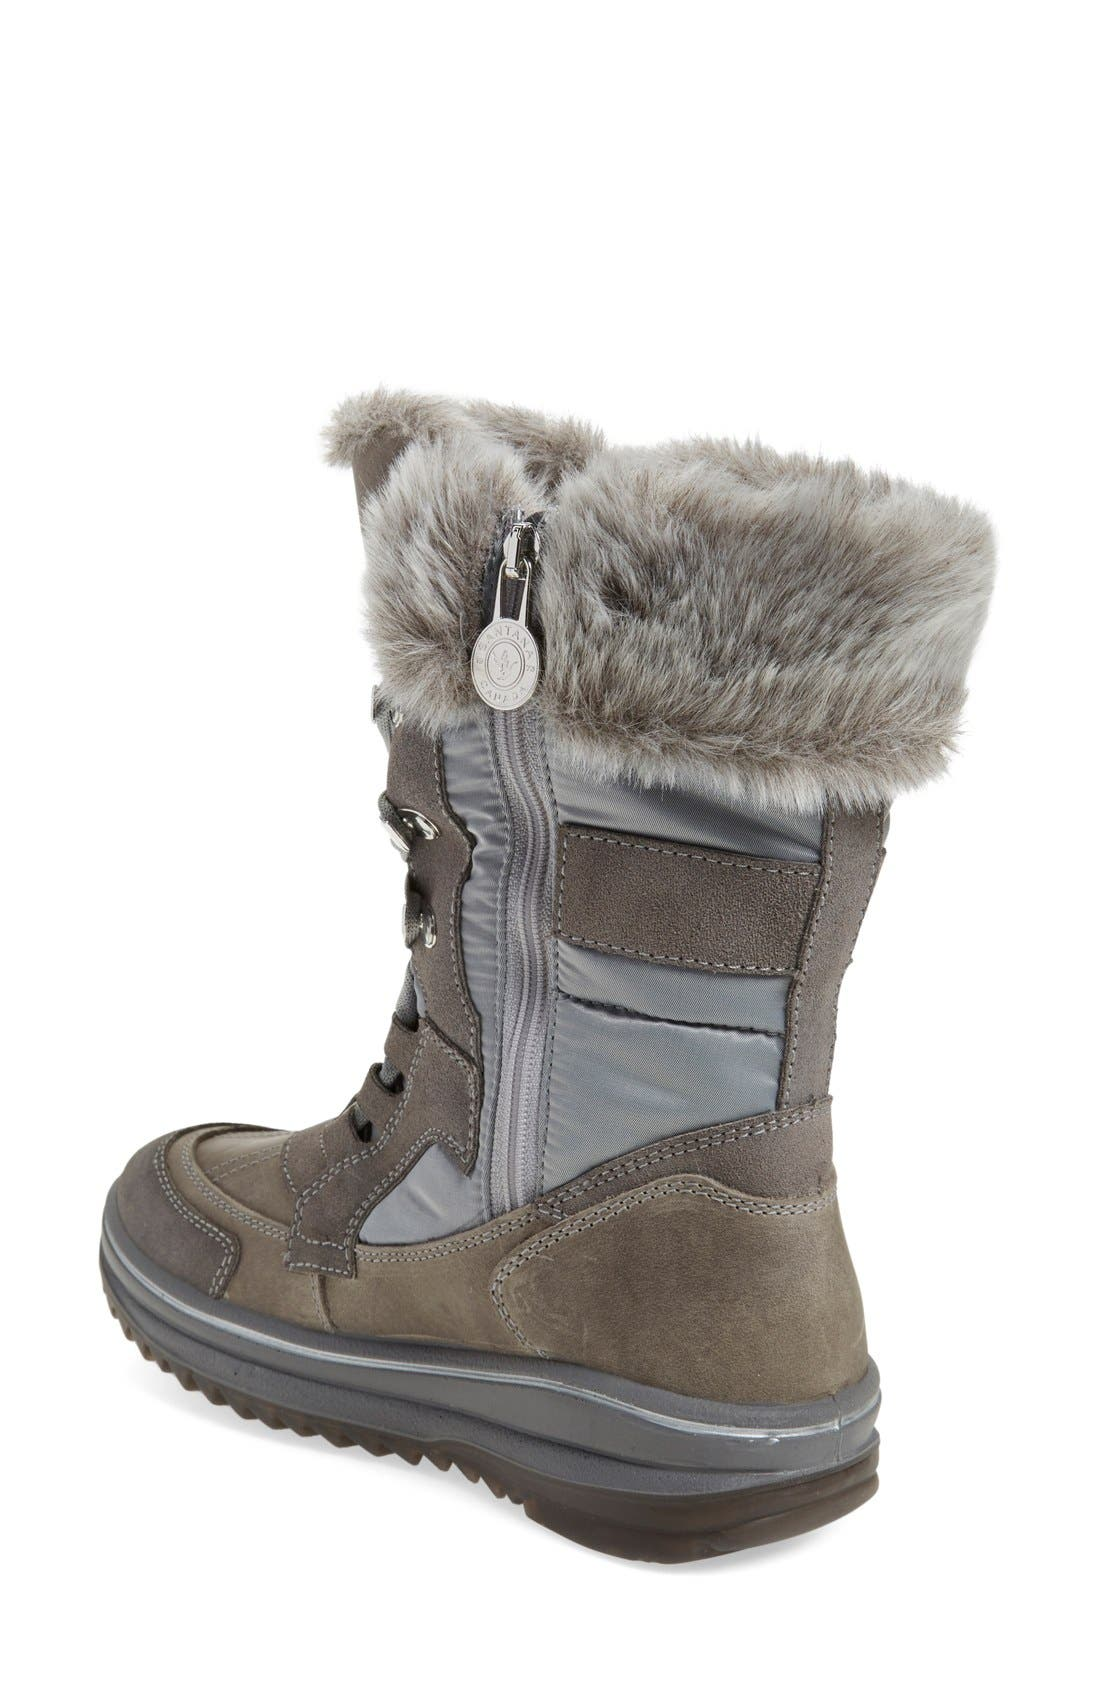 'Marta' Water Resistant Insulated Winter Boot,                             Alternate thumbnail 2, color,                             Grey Fabric